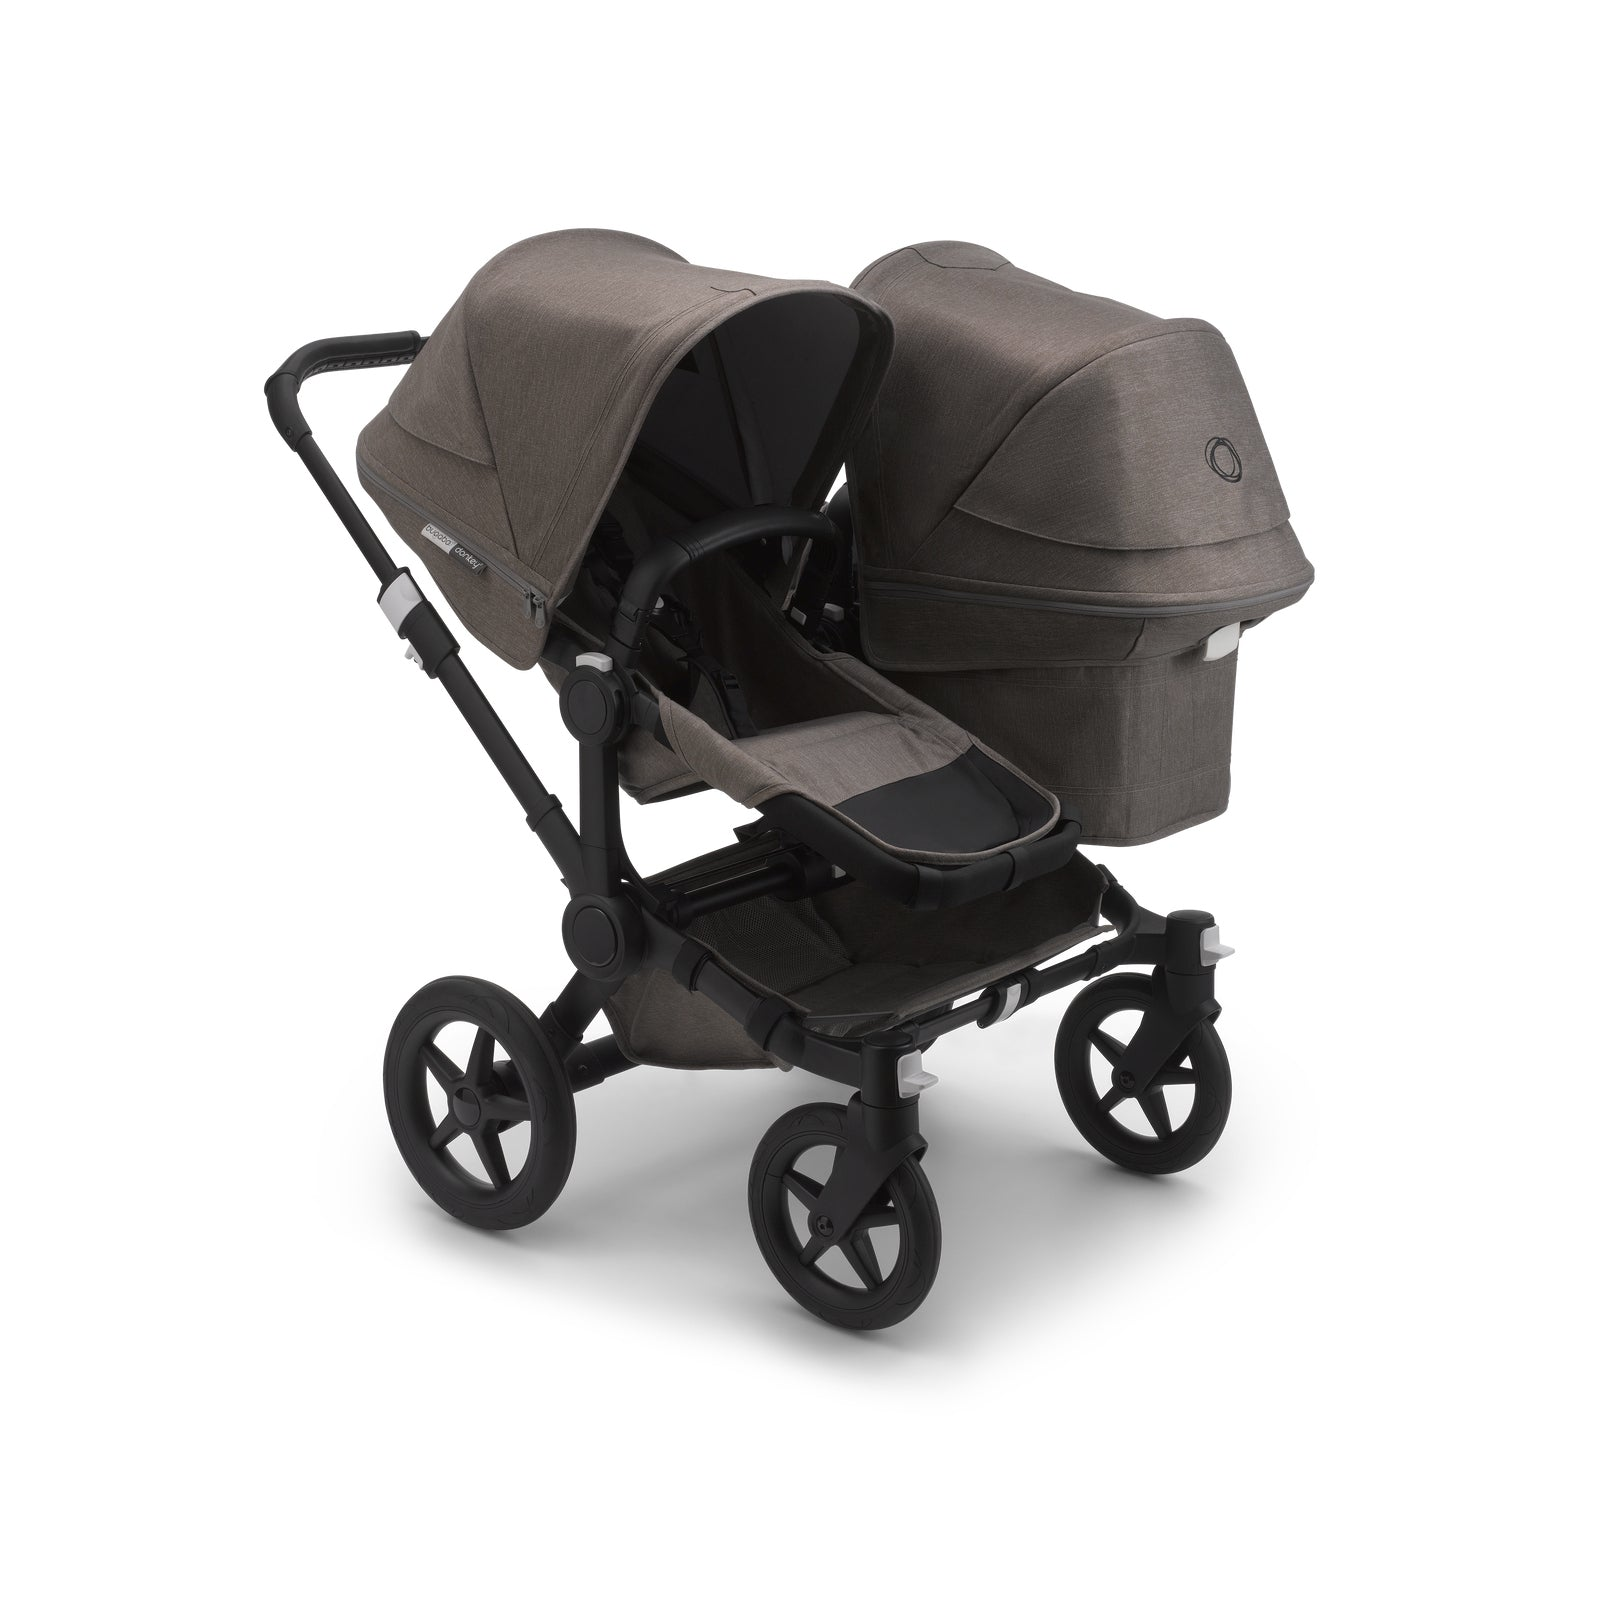 Bugaboo Donkey 3 Duo Seat and Carrycot Pushchair - Mineral Taupe Melange